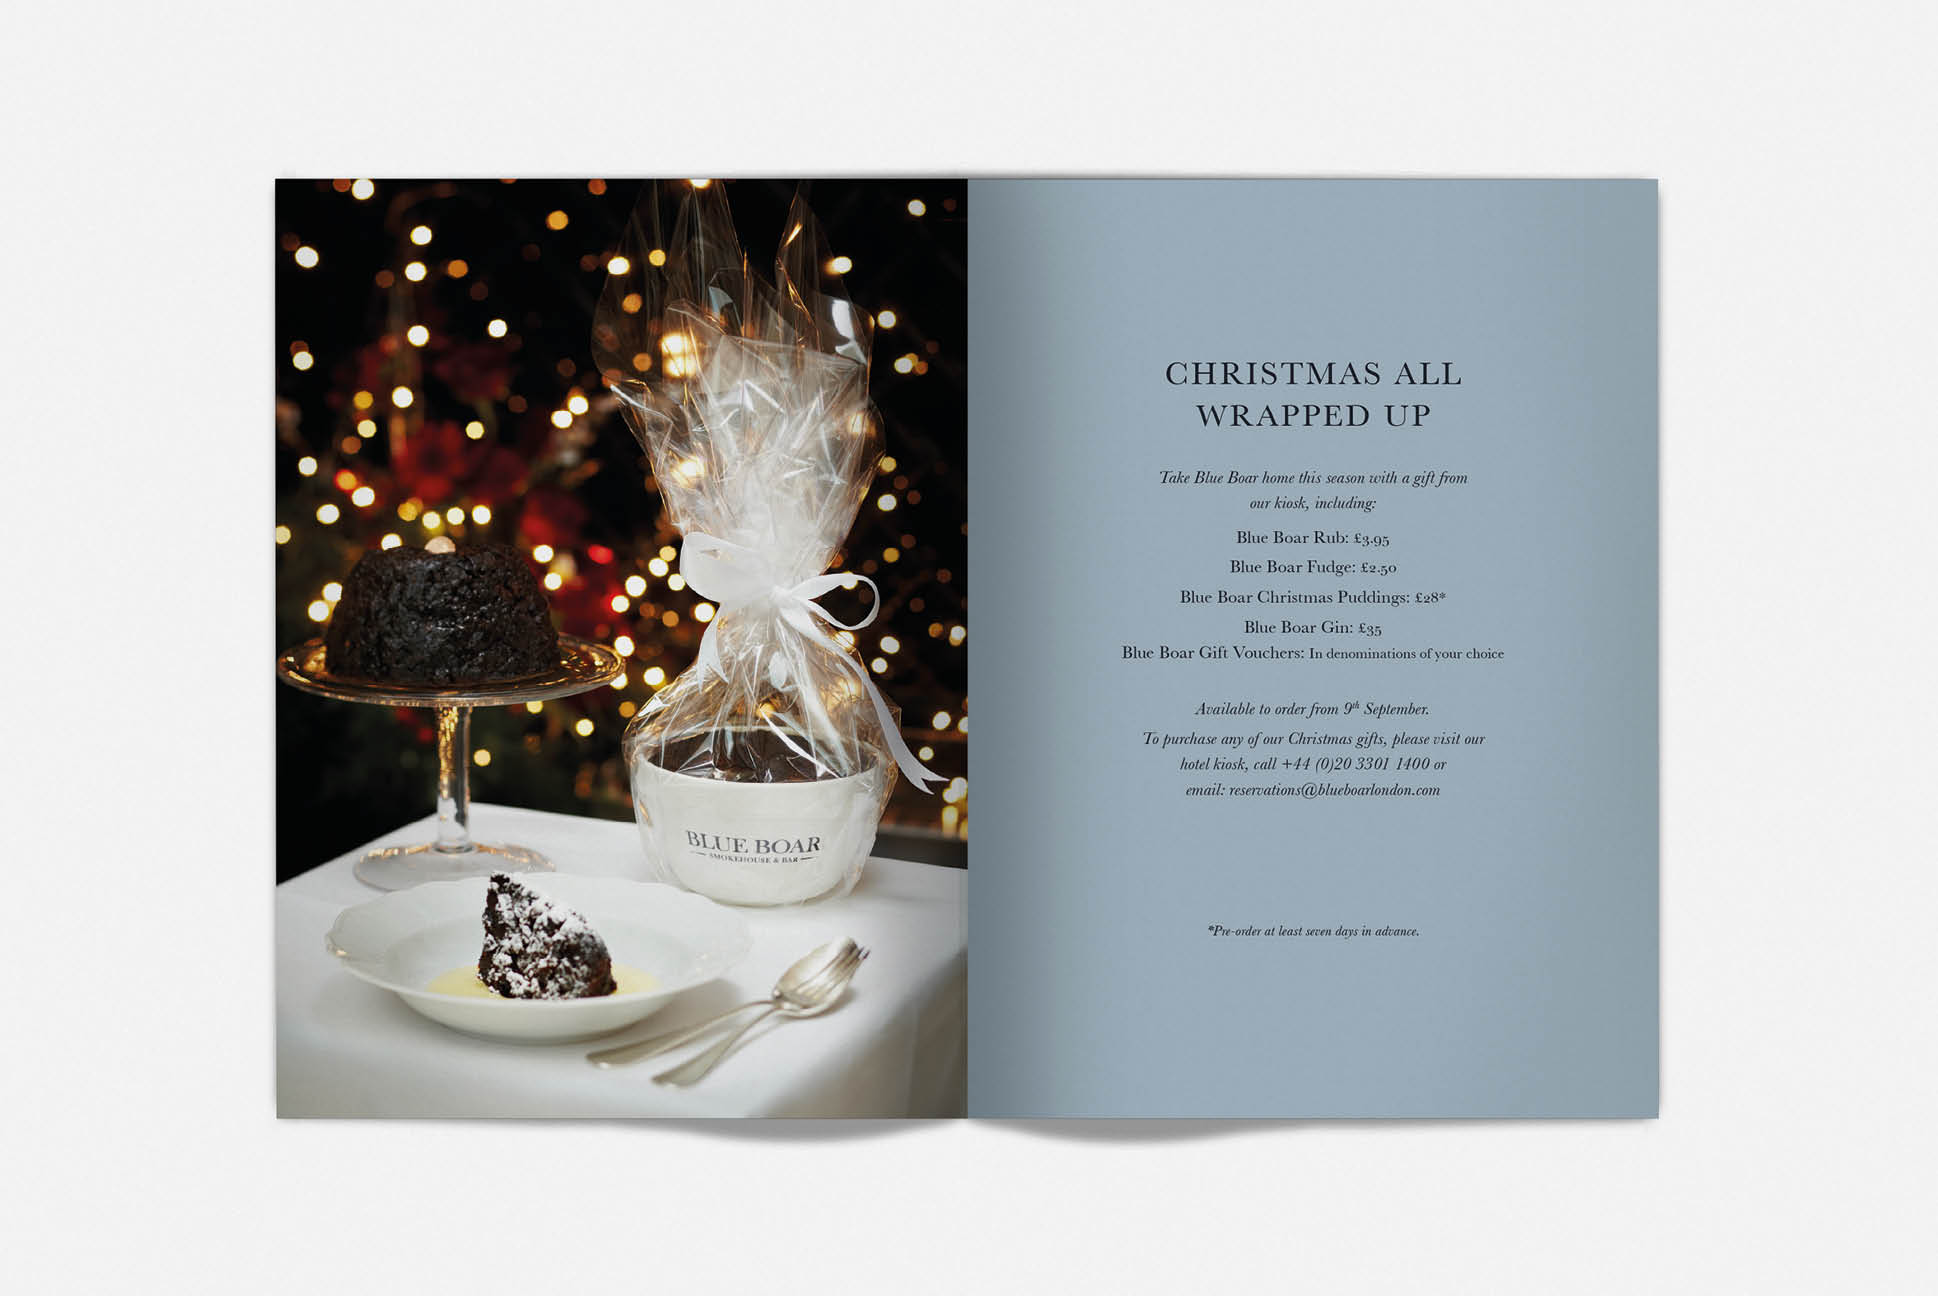 Blue Boar Christmas brochure